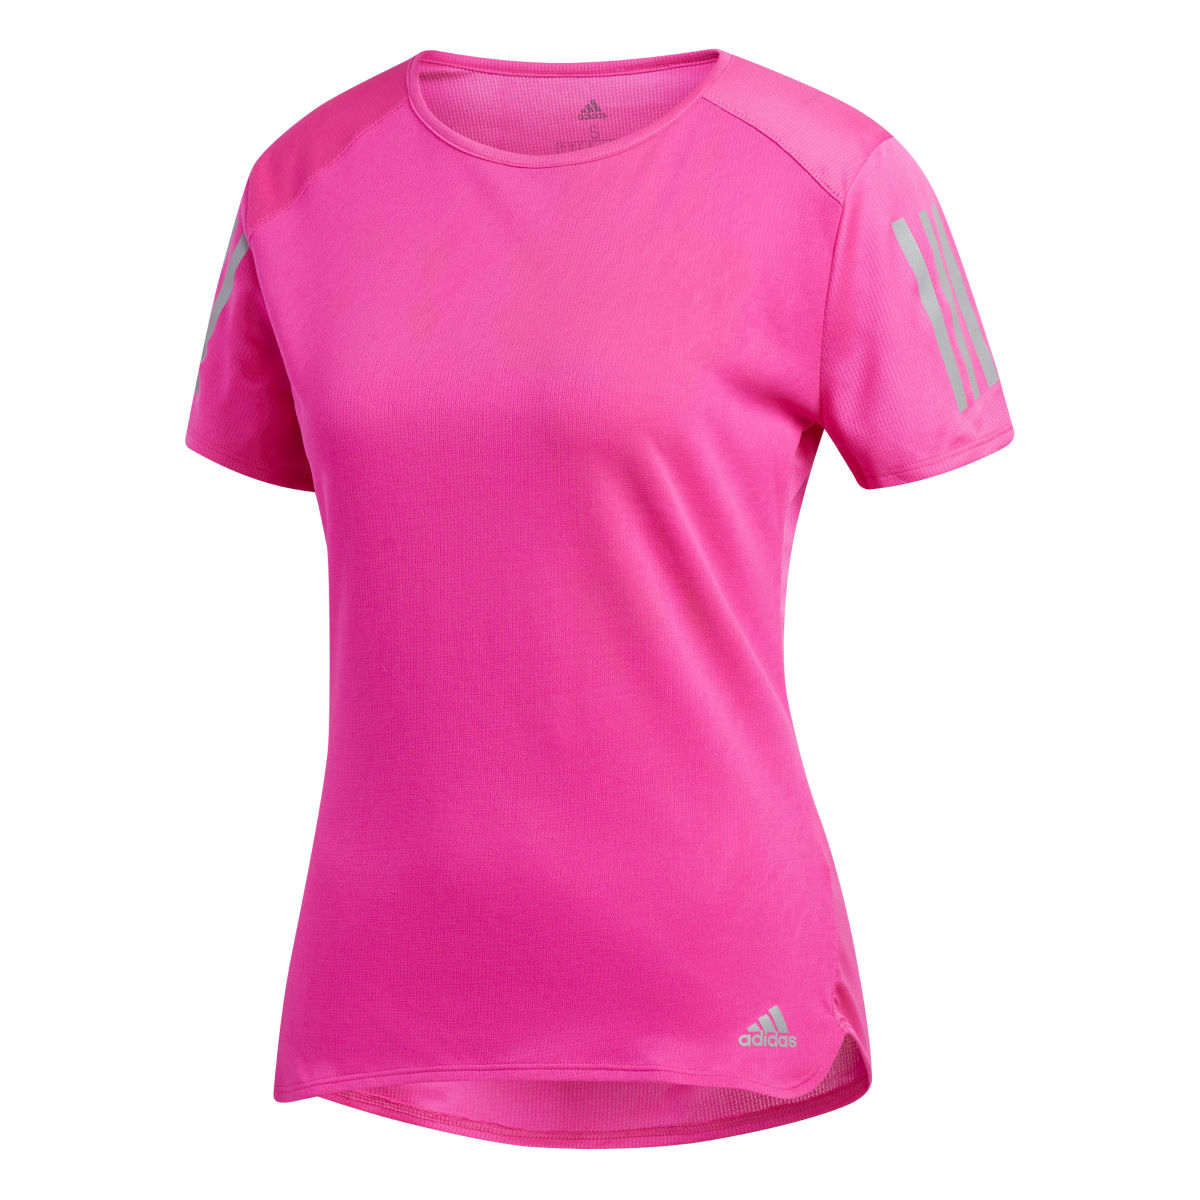 Maillot Femme adidas Response - Extra Small SHOCK PINK